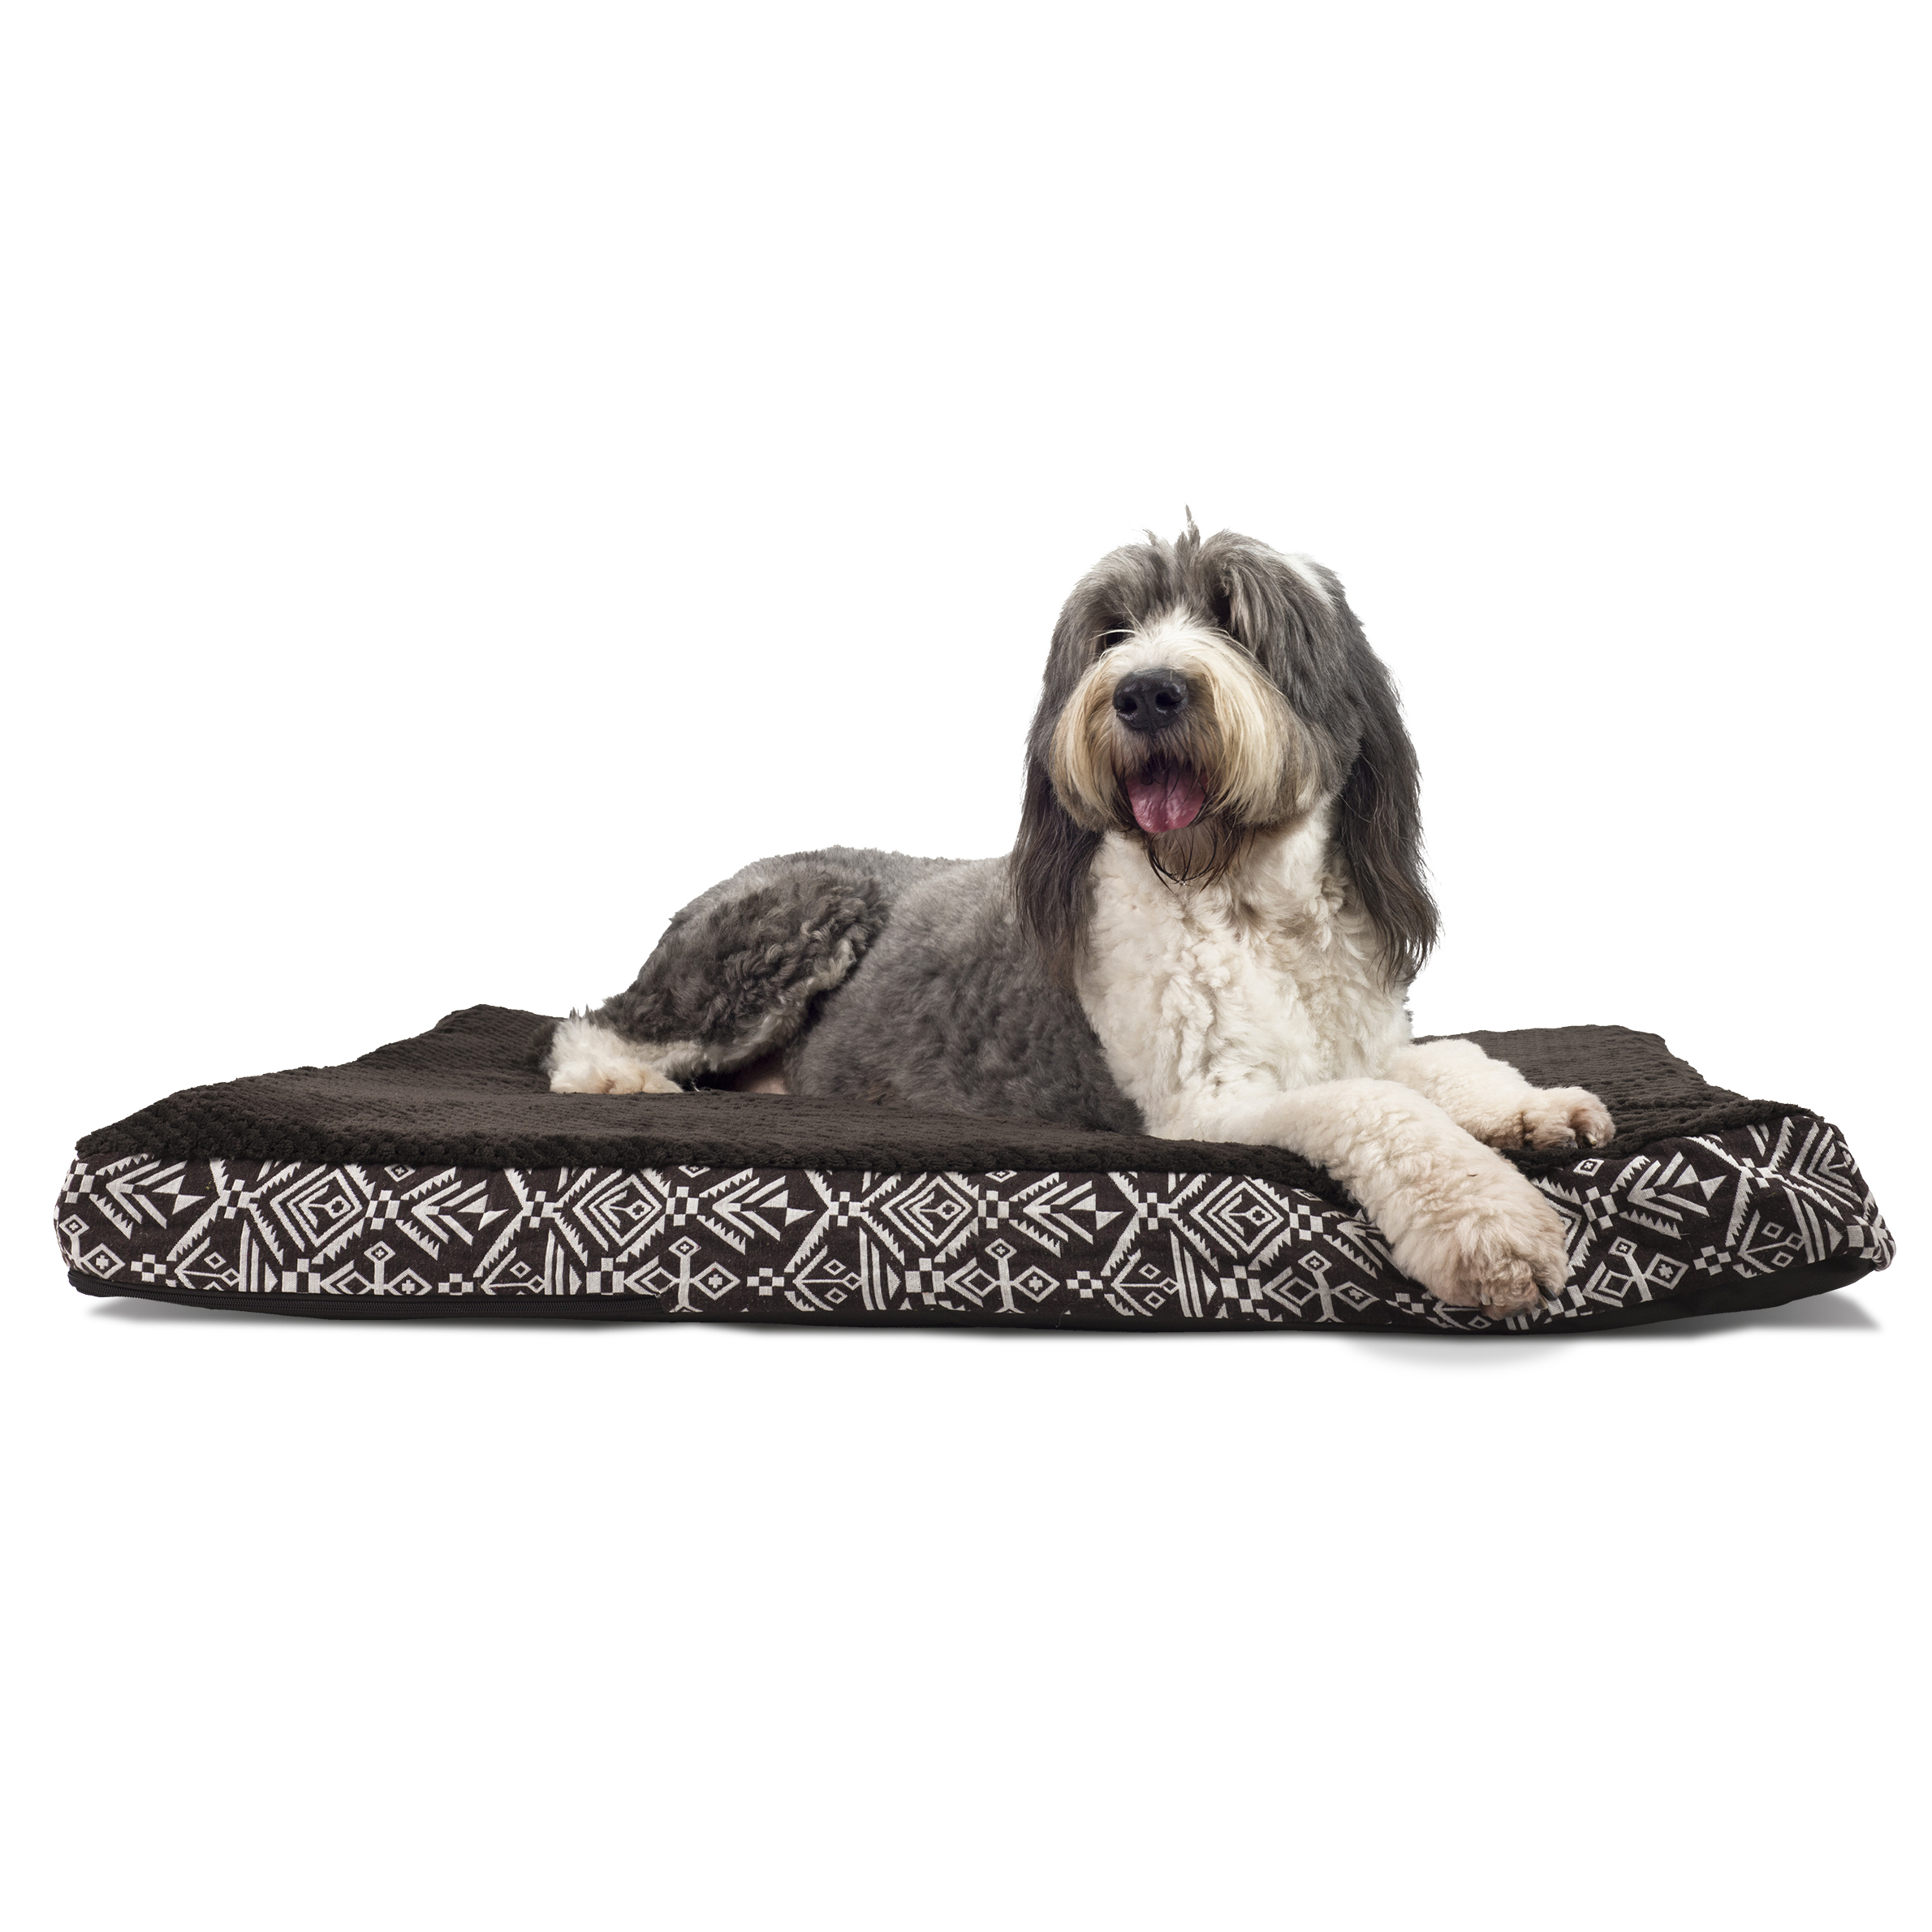 FurHaven Pet Dog Bed | Deluxe Memory Foam Plush Kilim Mattress Pet Bed for Dogs & Cats, Southwest Espresso, Extra Large